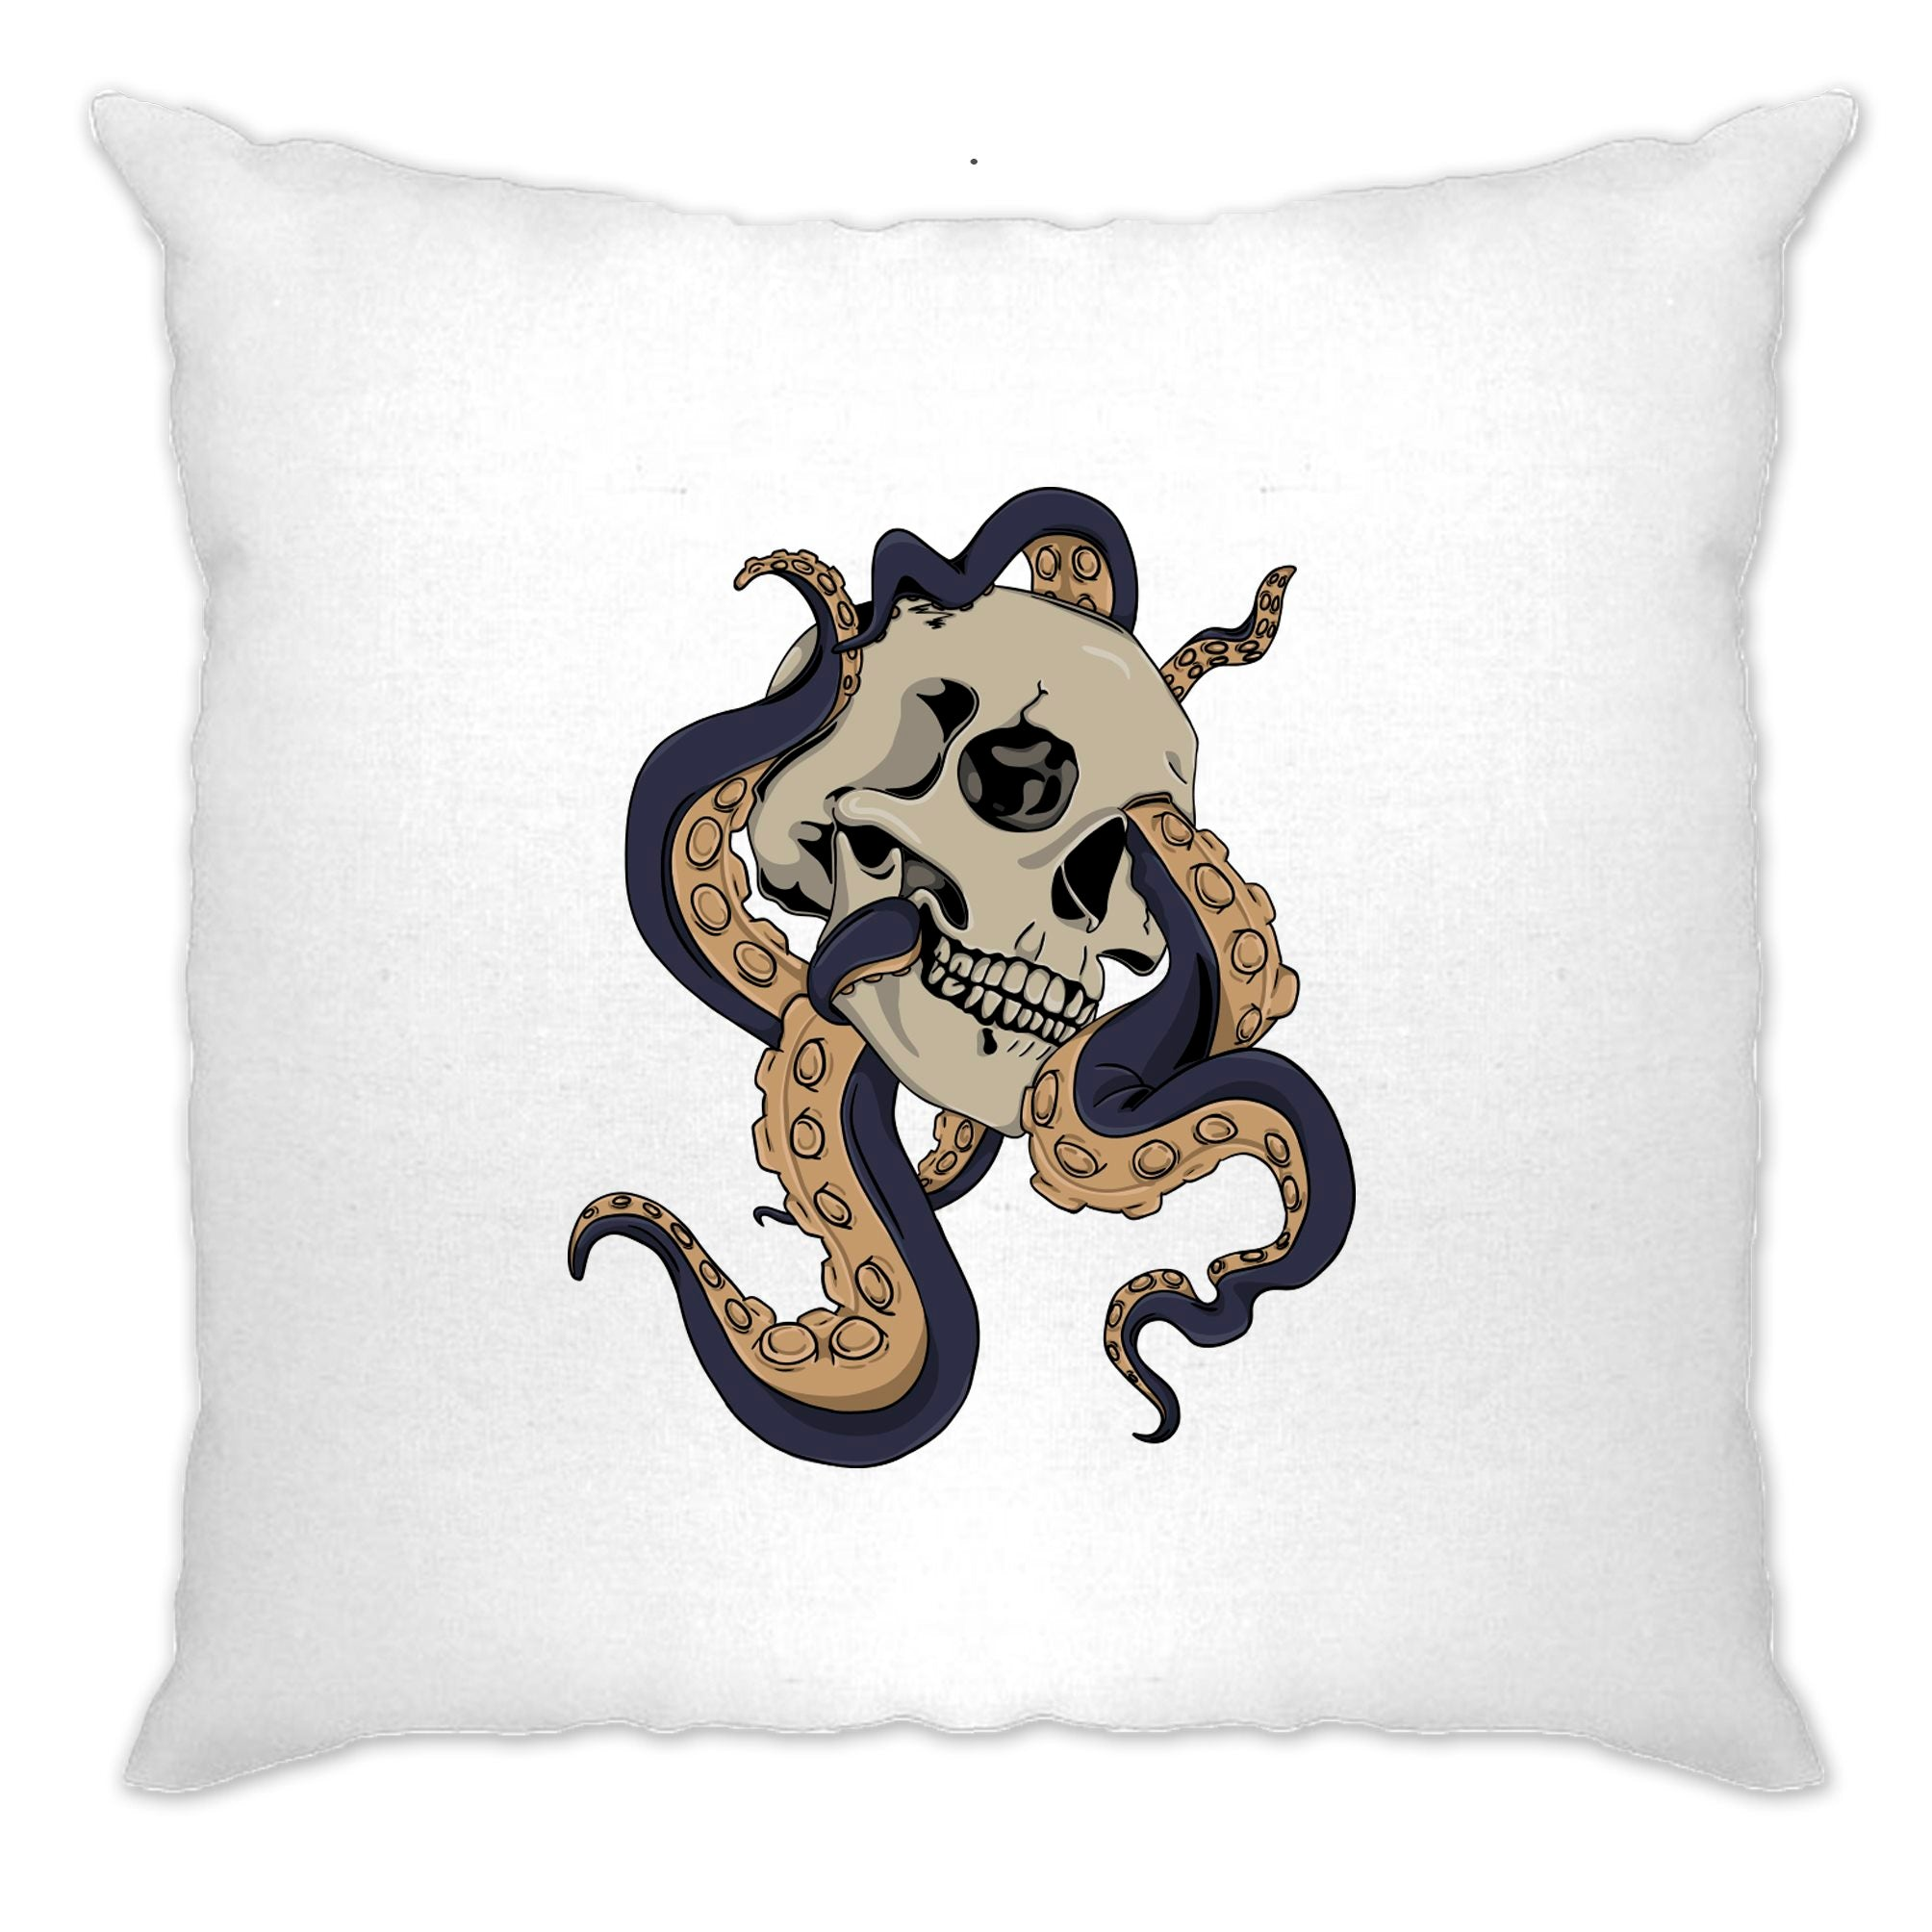 Tattoo Street Art Cushion Cover Skull And Octopus Graphic